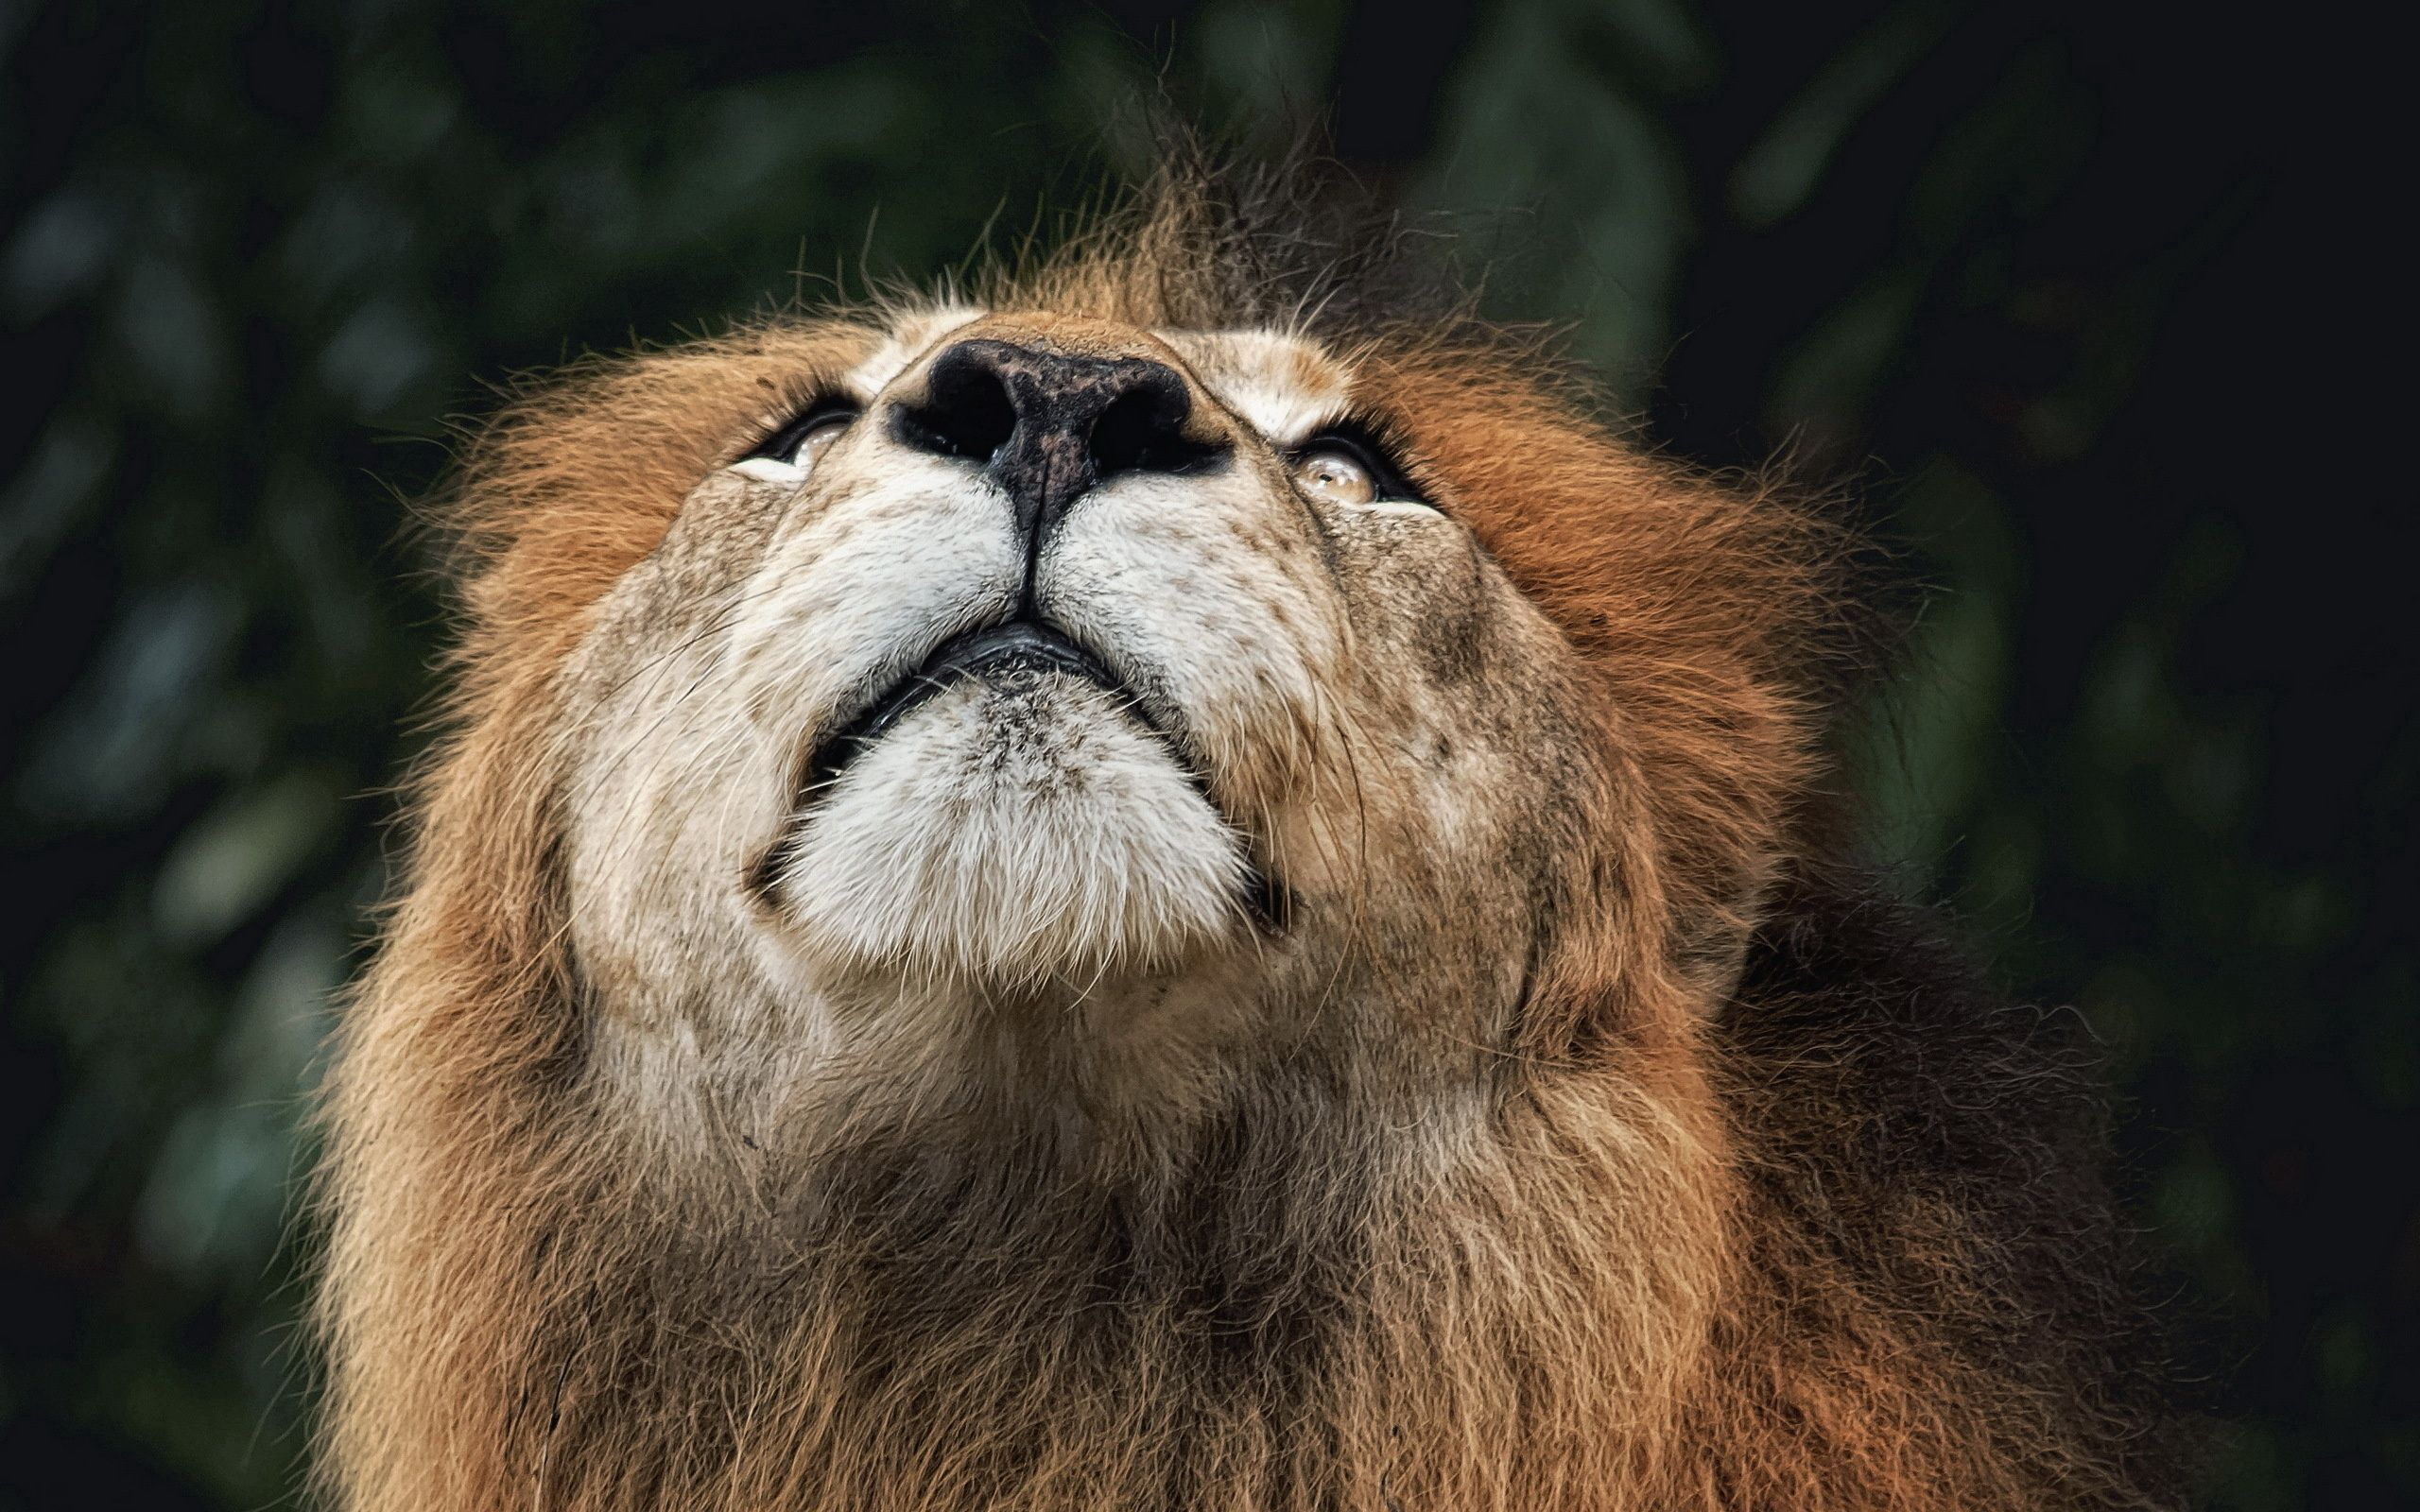 155042 download wallpaper Animals, Lion, Muzzle, Nose, Look Up, Looking Up screensavers and pictures for free